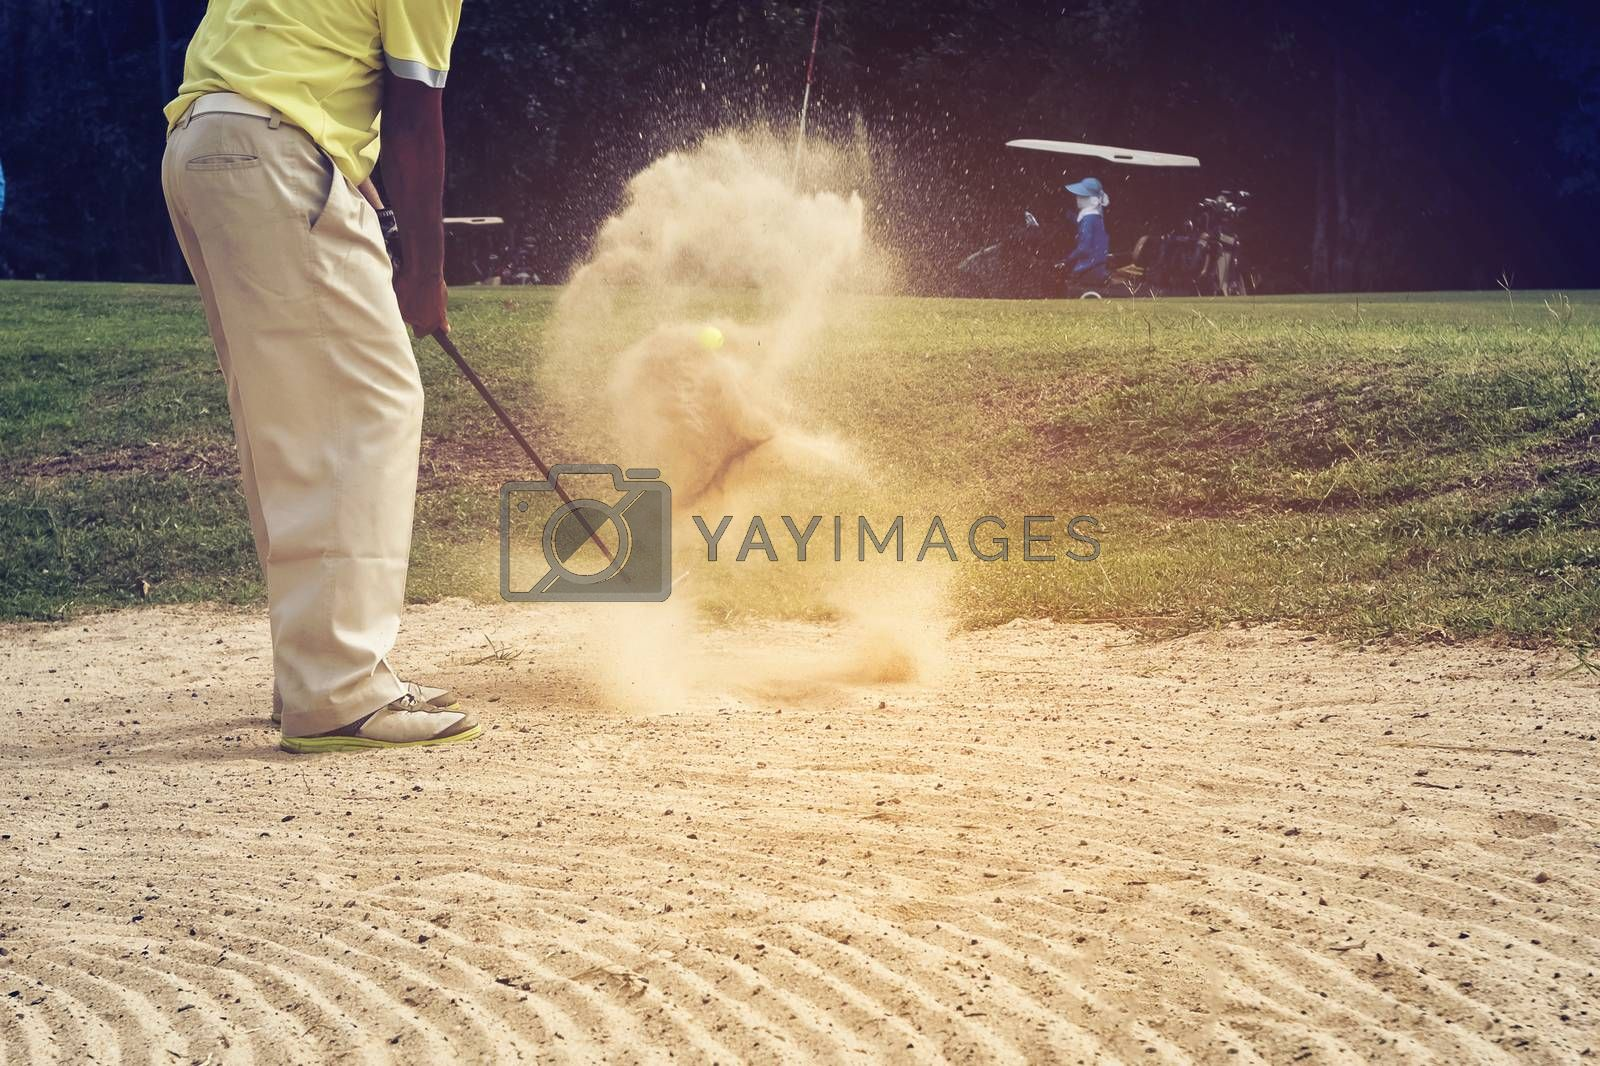 Golfer hitting the ball on the sand to stay on the green. Speeds Cause blurred by movement